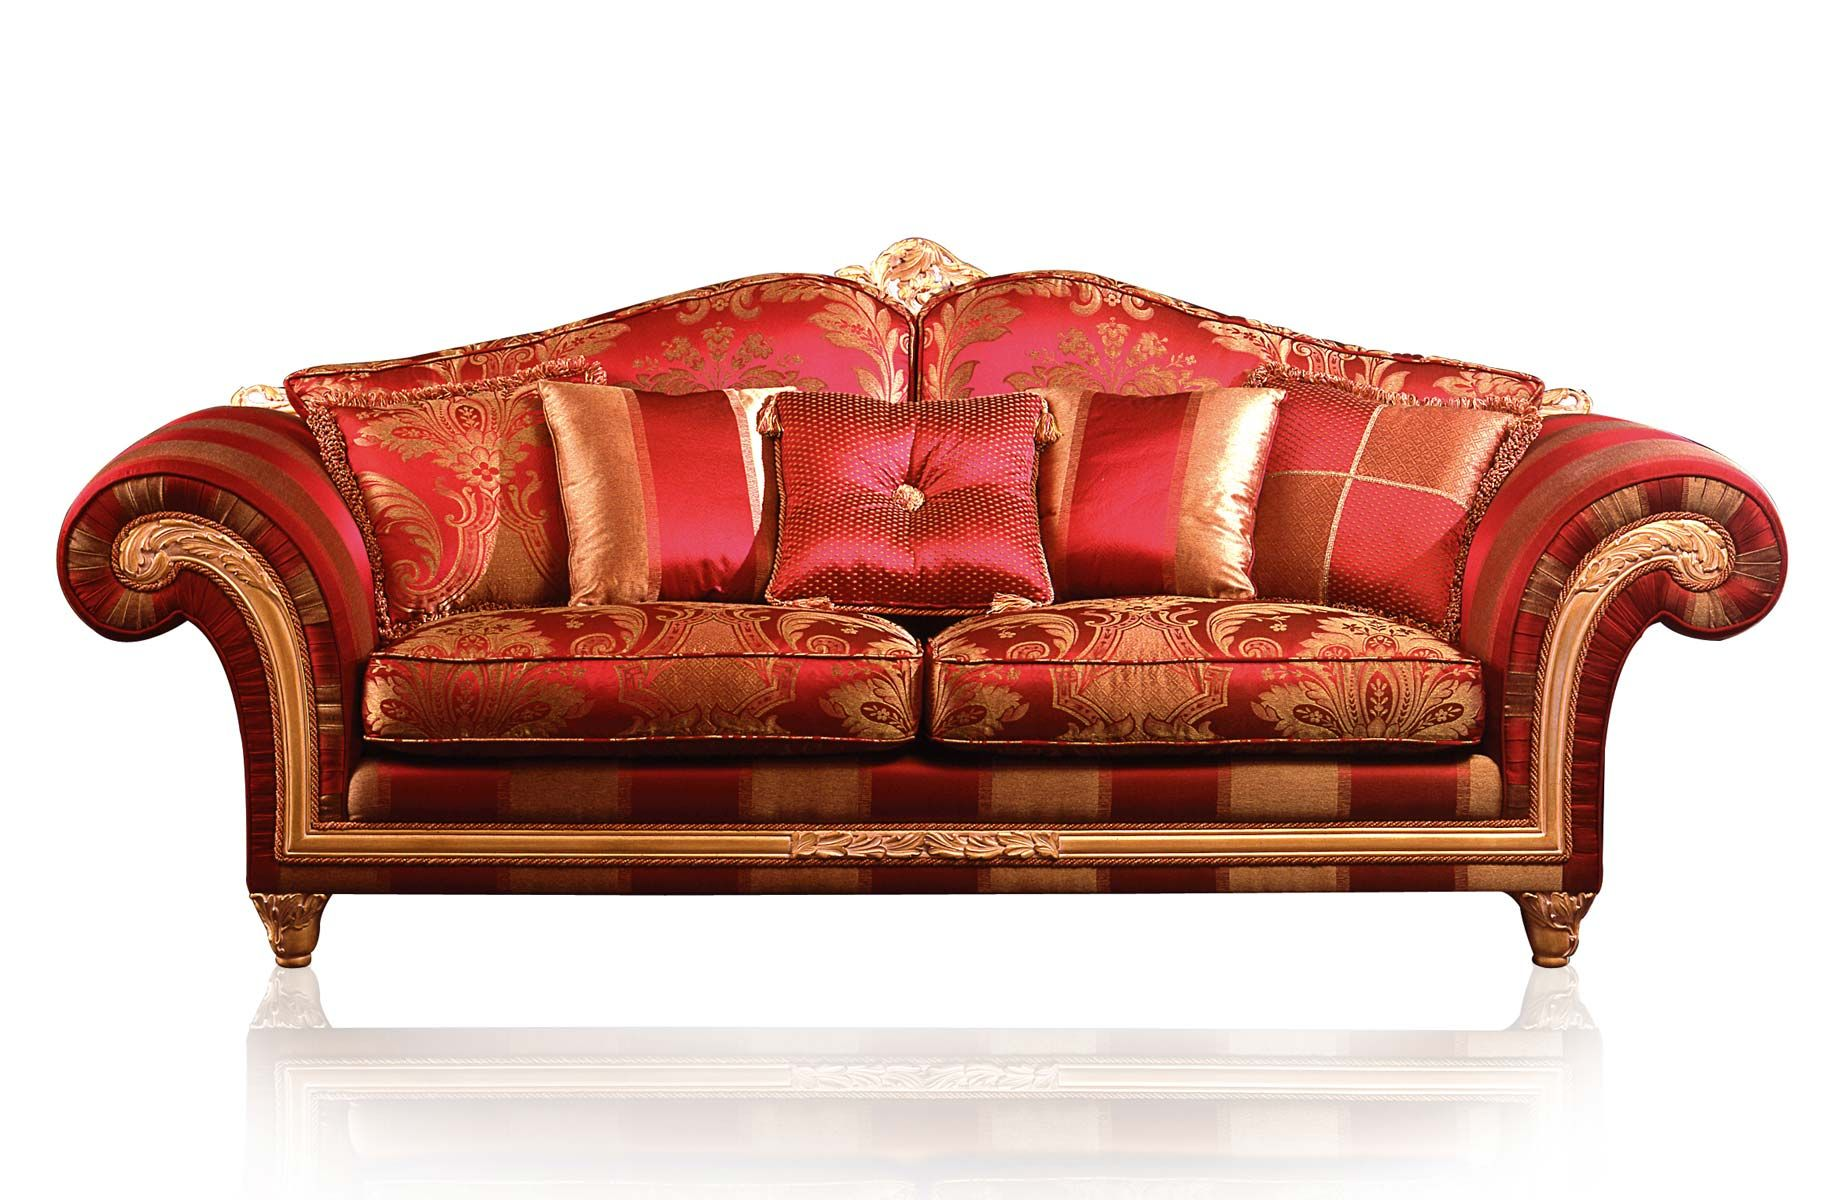 Sofas: Luxury Classic Sofa And Armchairs Imperial By Vimercati Media In  Red, Classic English Home Decor, Classic Sofas,